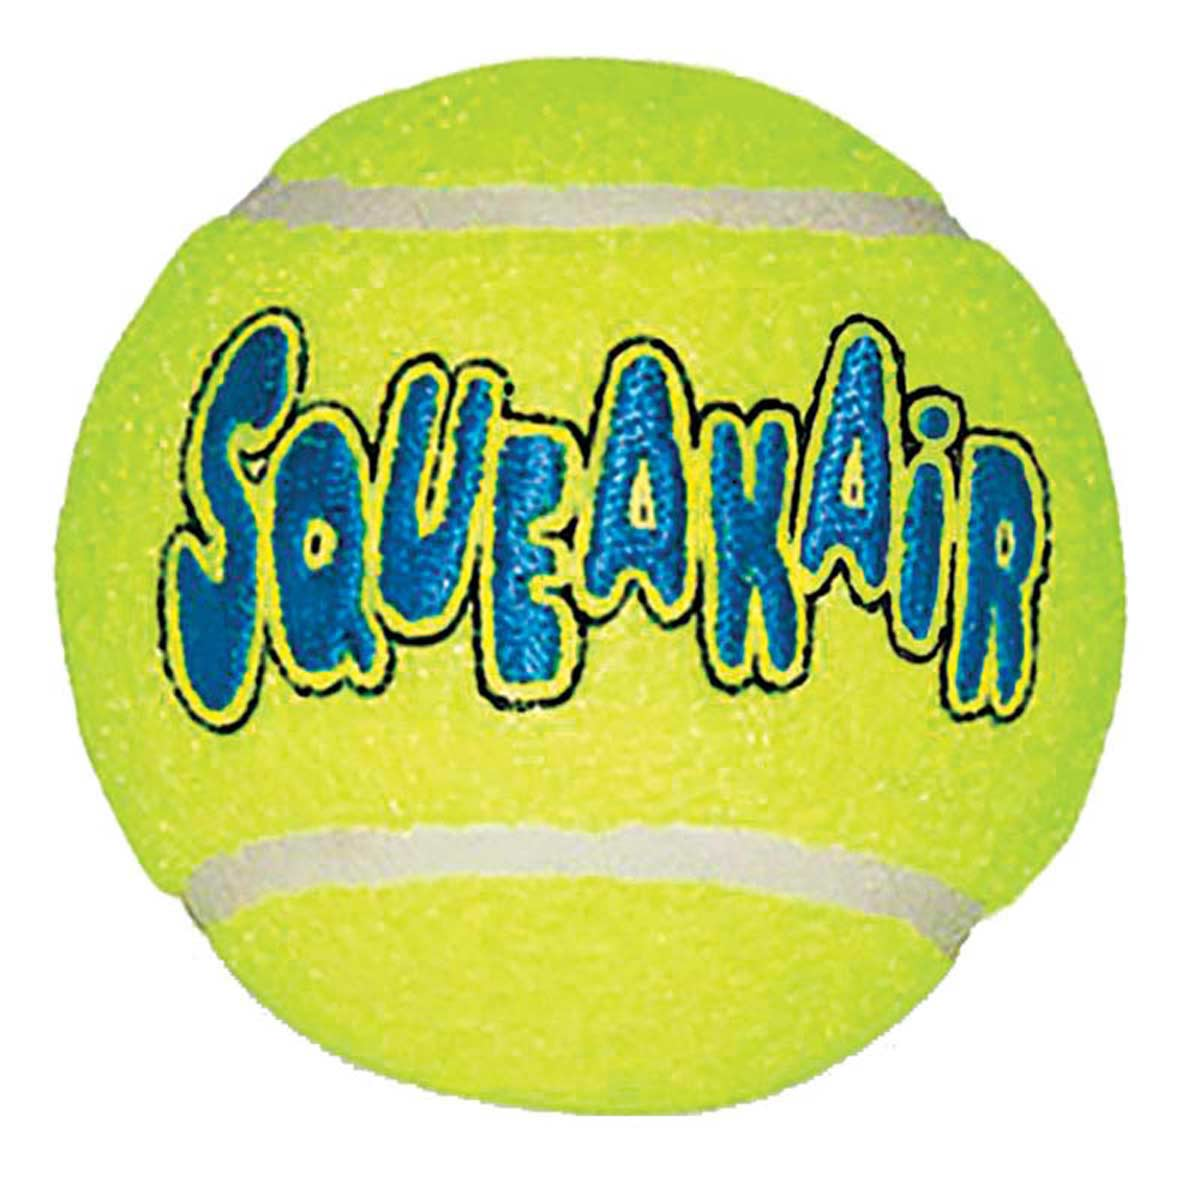 KONG Squeaker Tennis Ball 2.5 inches for Dogs